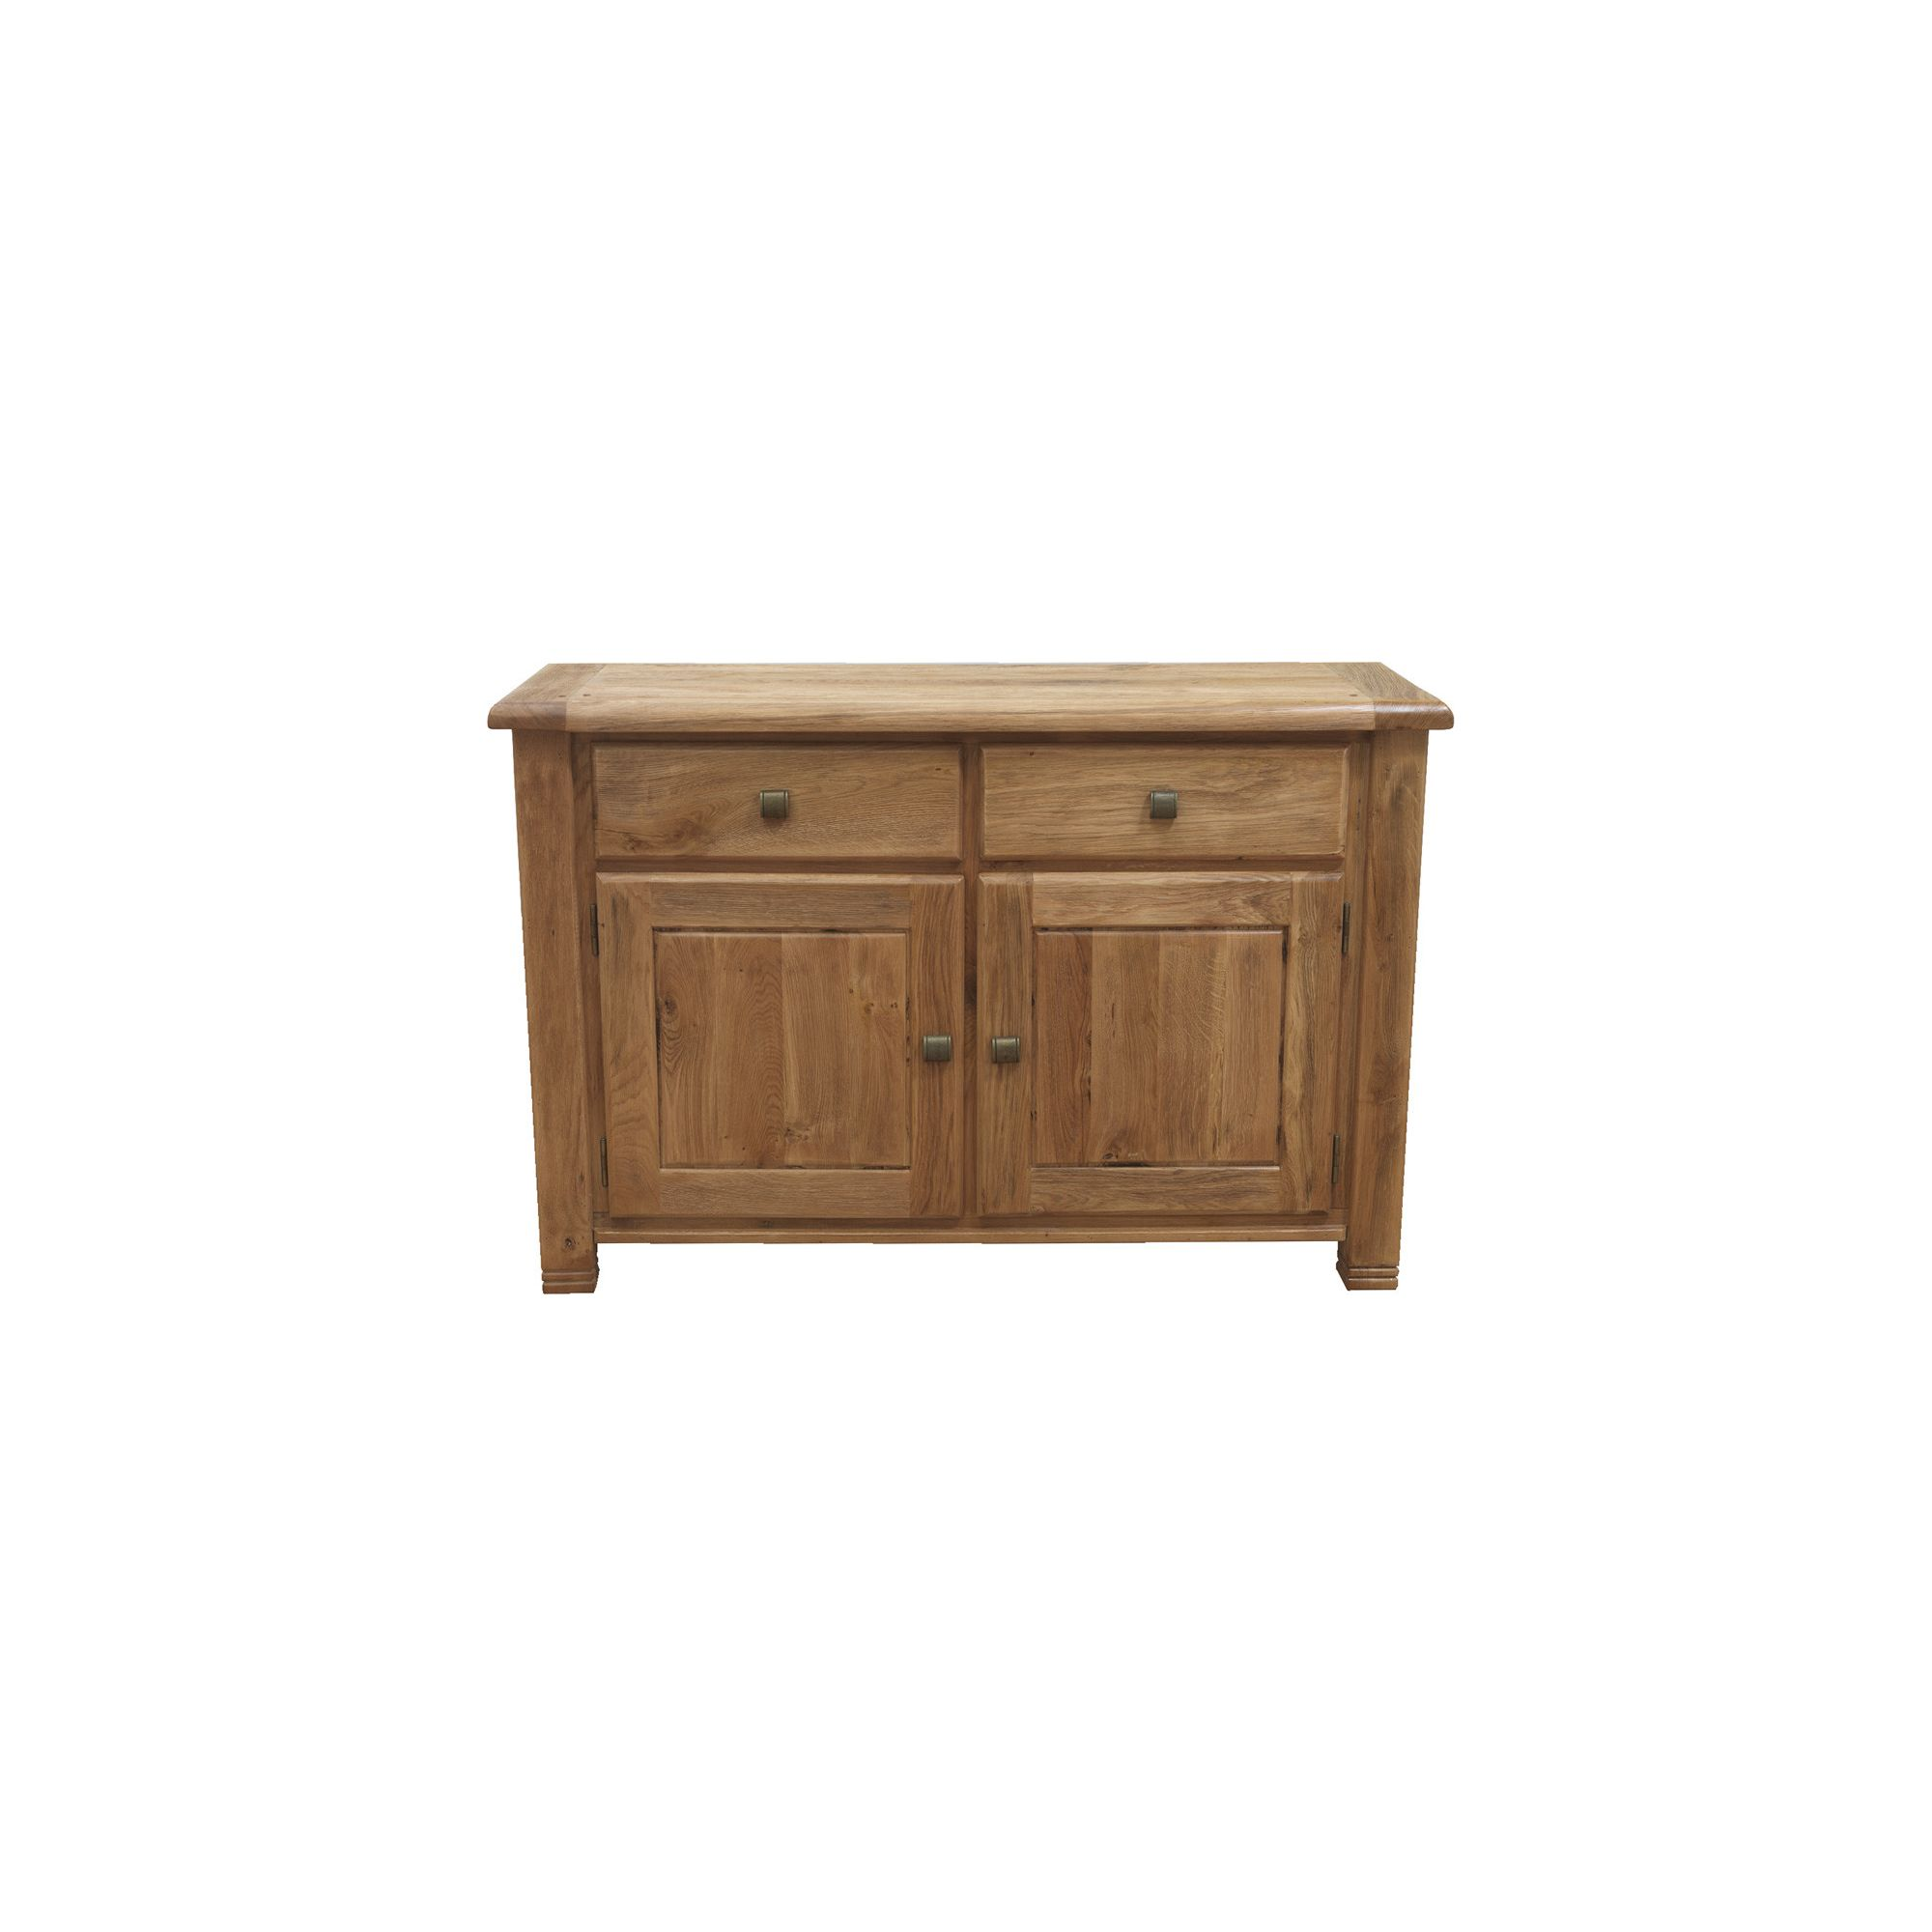 Furniture Link Danube Large Sideboard in Weathered Oak at Tesco Direct